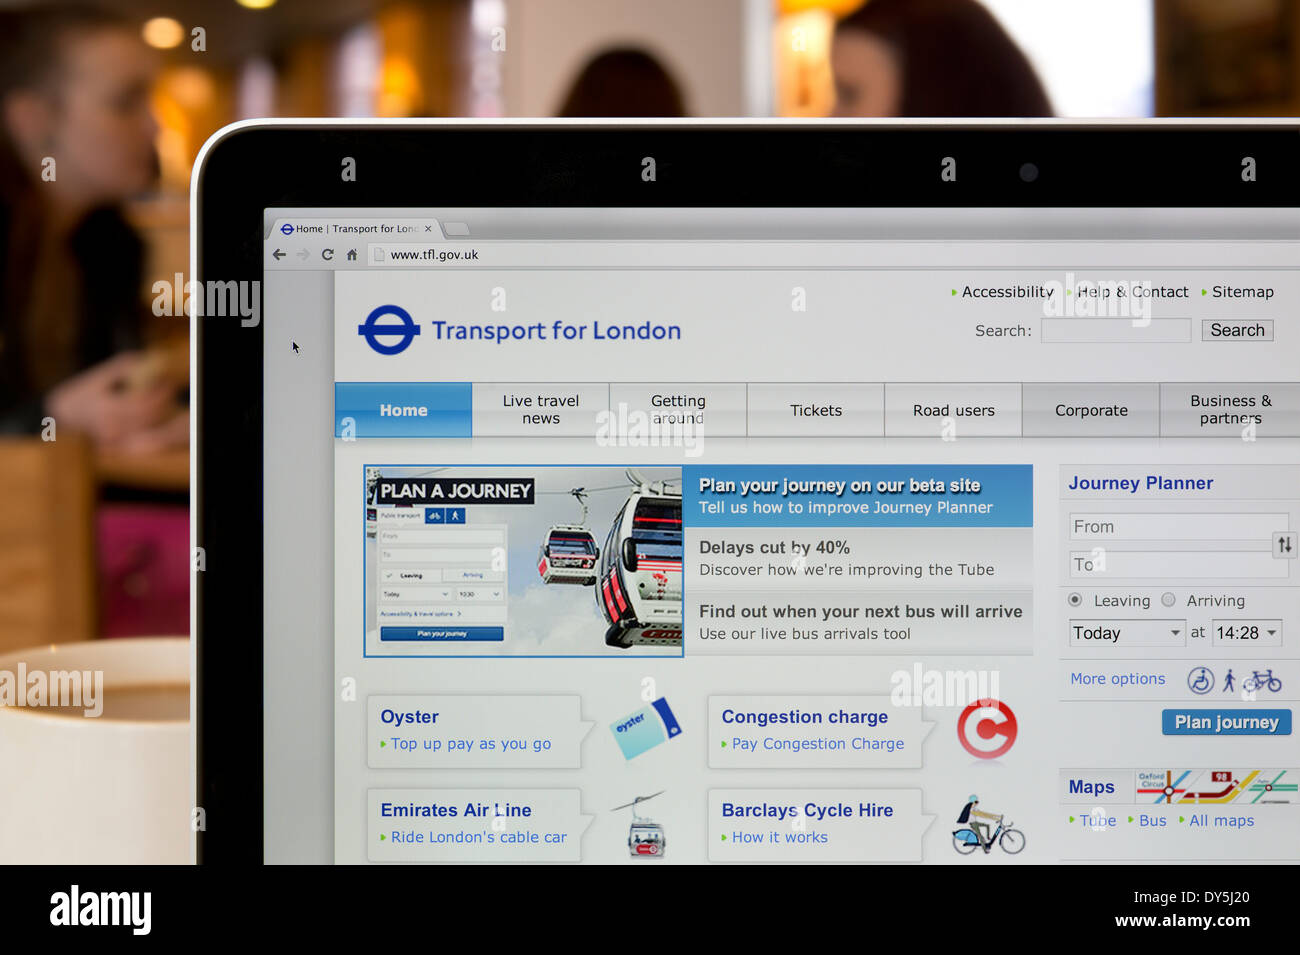 The TfL website shot in a coffee shop environment (Editorial use only: print, TV, e-book and editorial website). - Stock Image